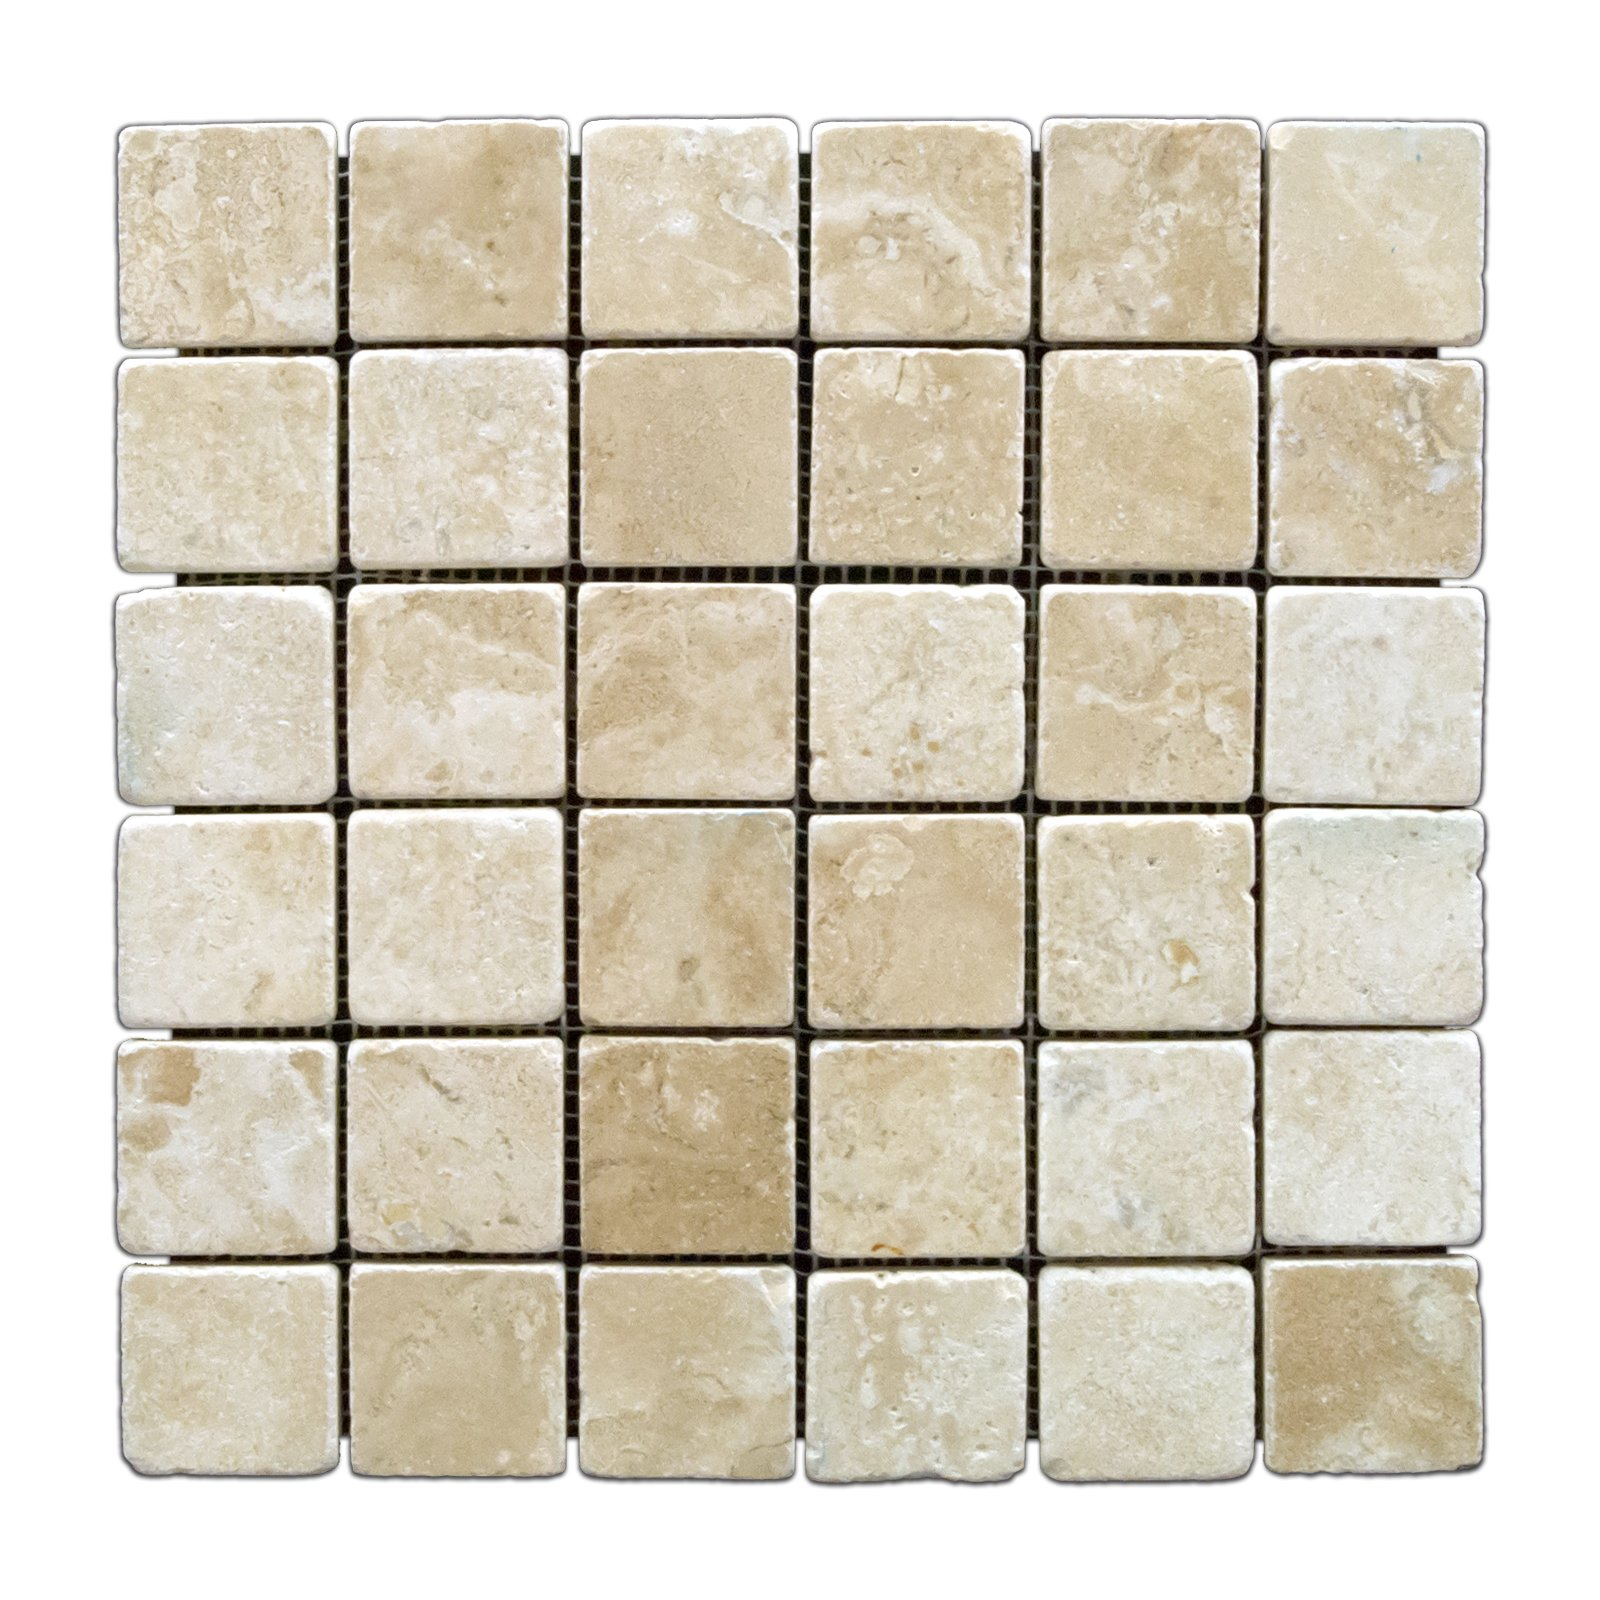 Durango Cream 2 X 2 Tumbled Travertine Mosaic Tile - Box of 5 sq. ft. by Oracle Tile & Stone